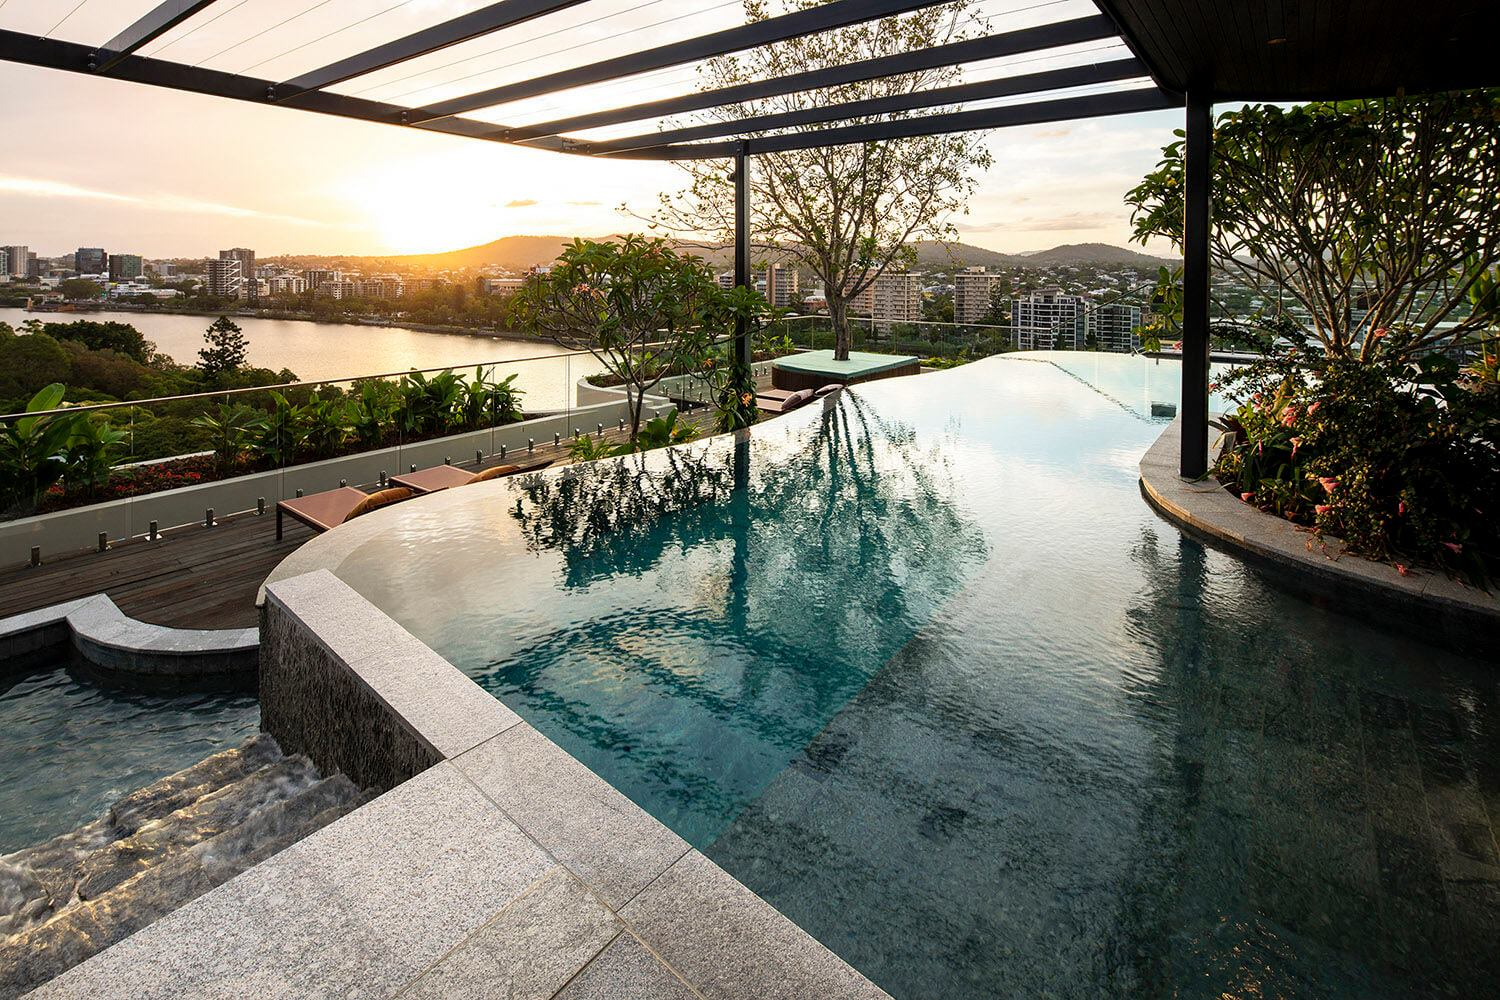 outdoor pool on balcony with river view